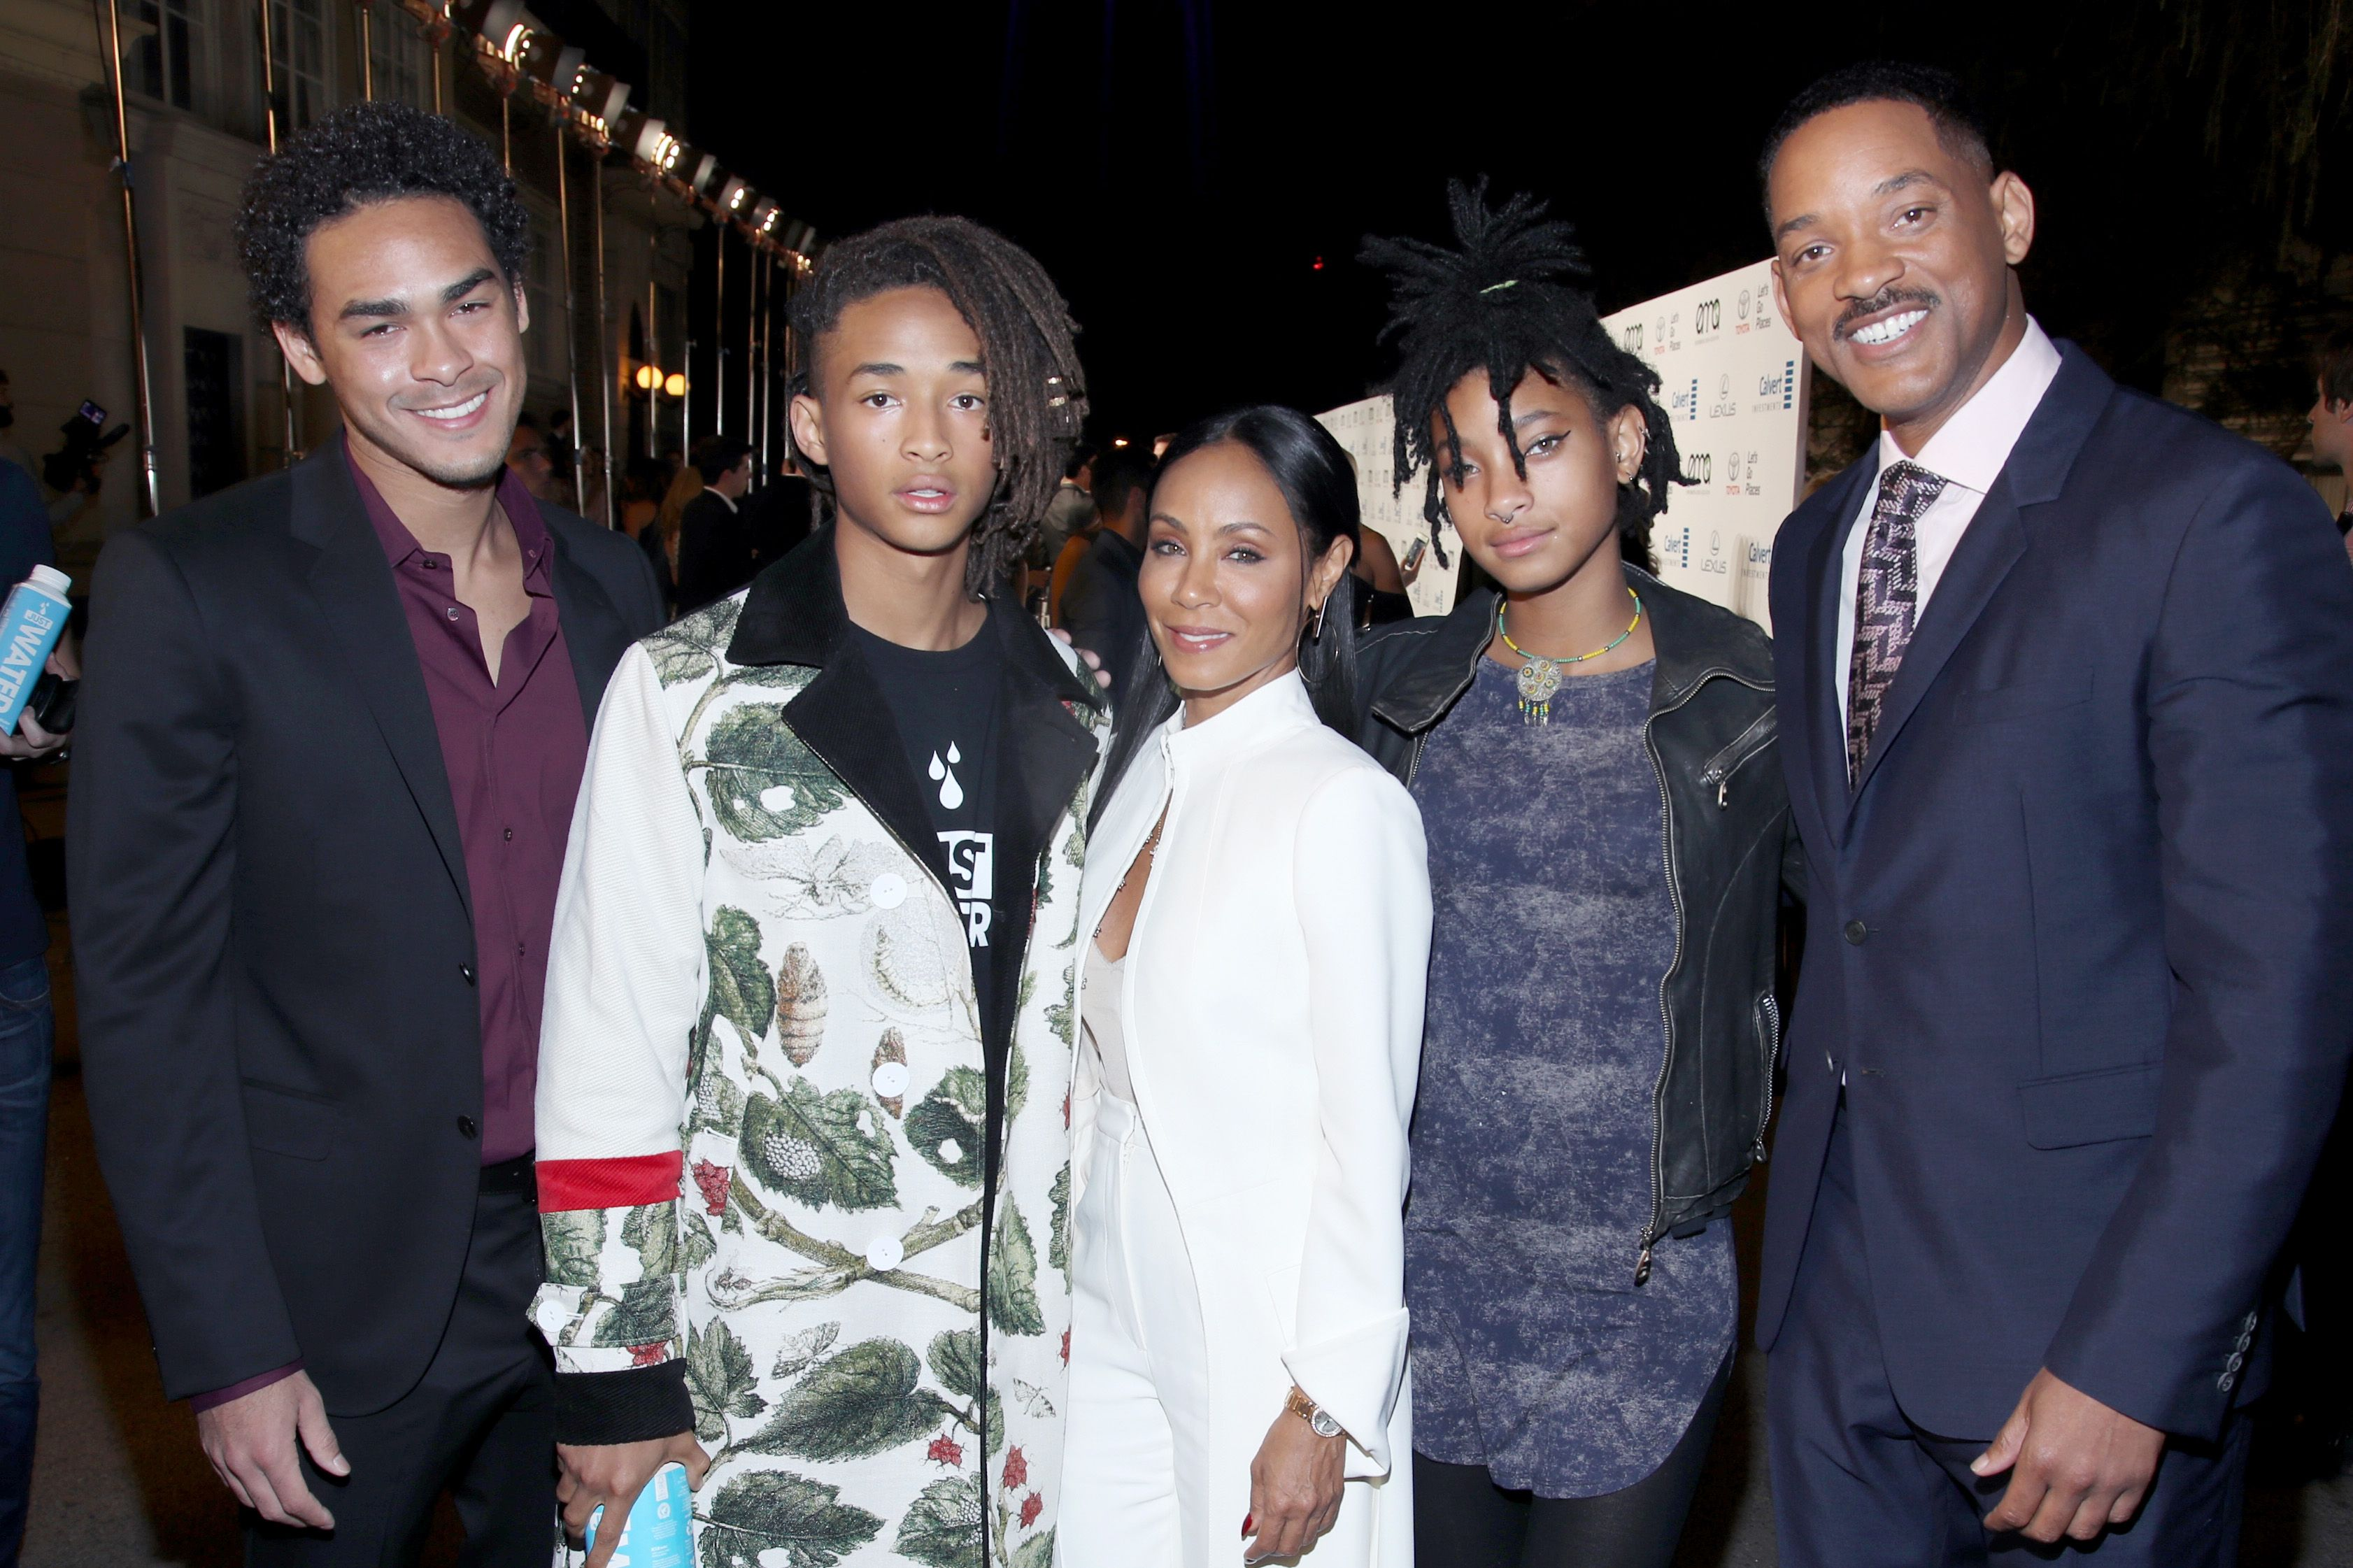 Trey Smith and Jaden Smith and Jada Pinkett Smith, singer Willow Smith and actor Will Smith attend the Environmental Media Association 26th Annual EMA Awards,2016| Photo: Getty Images